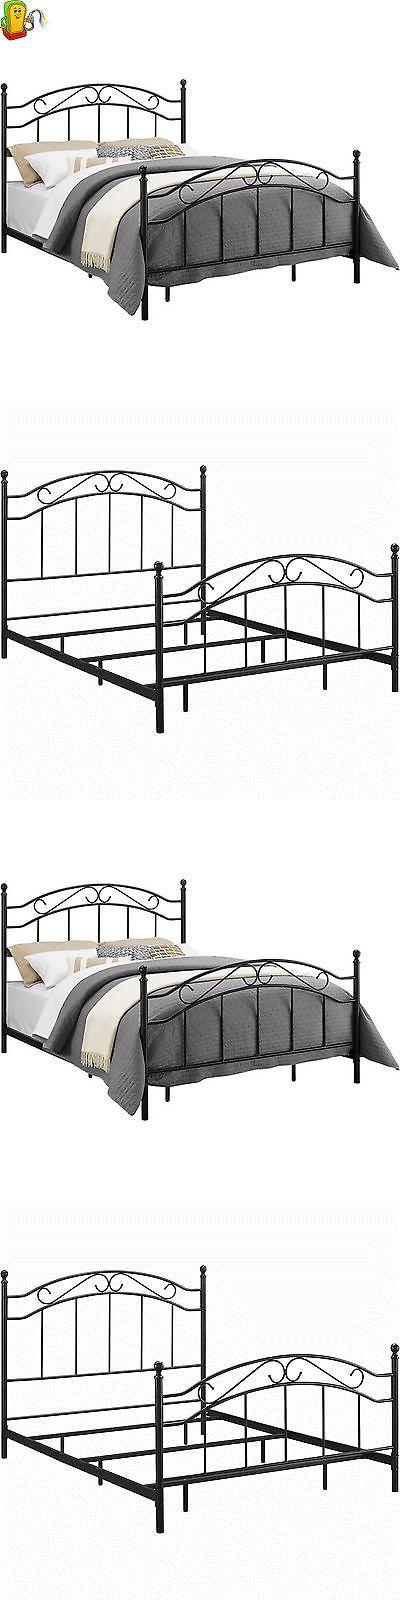 Beds and Bed Frames 175758: Queen Size Metal Bed Frame Headboard Footboard Contemporary Bedroom Furniture -> BUY IT NOW ONLY: $117 on eBay!